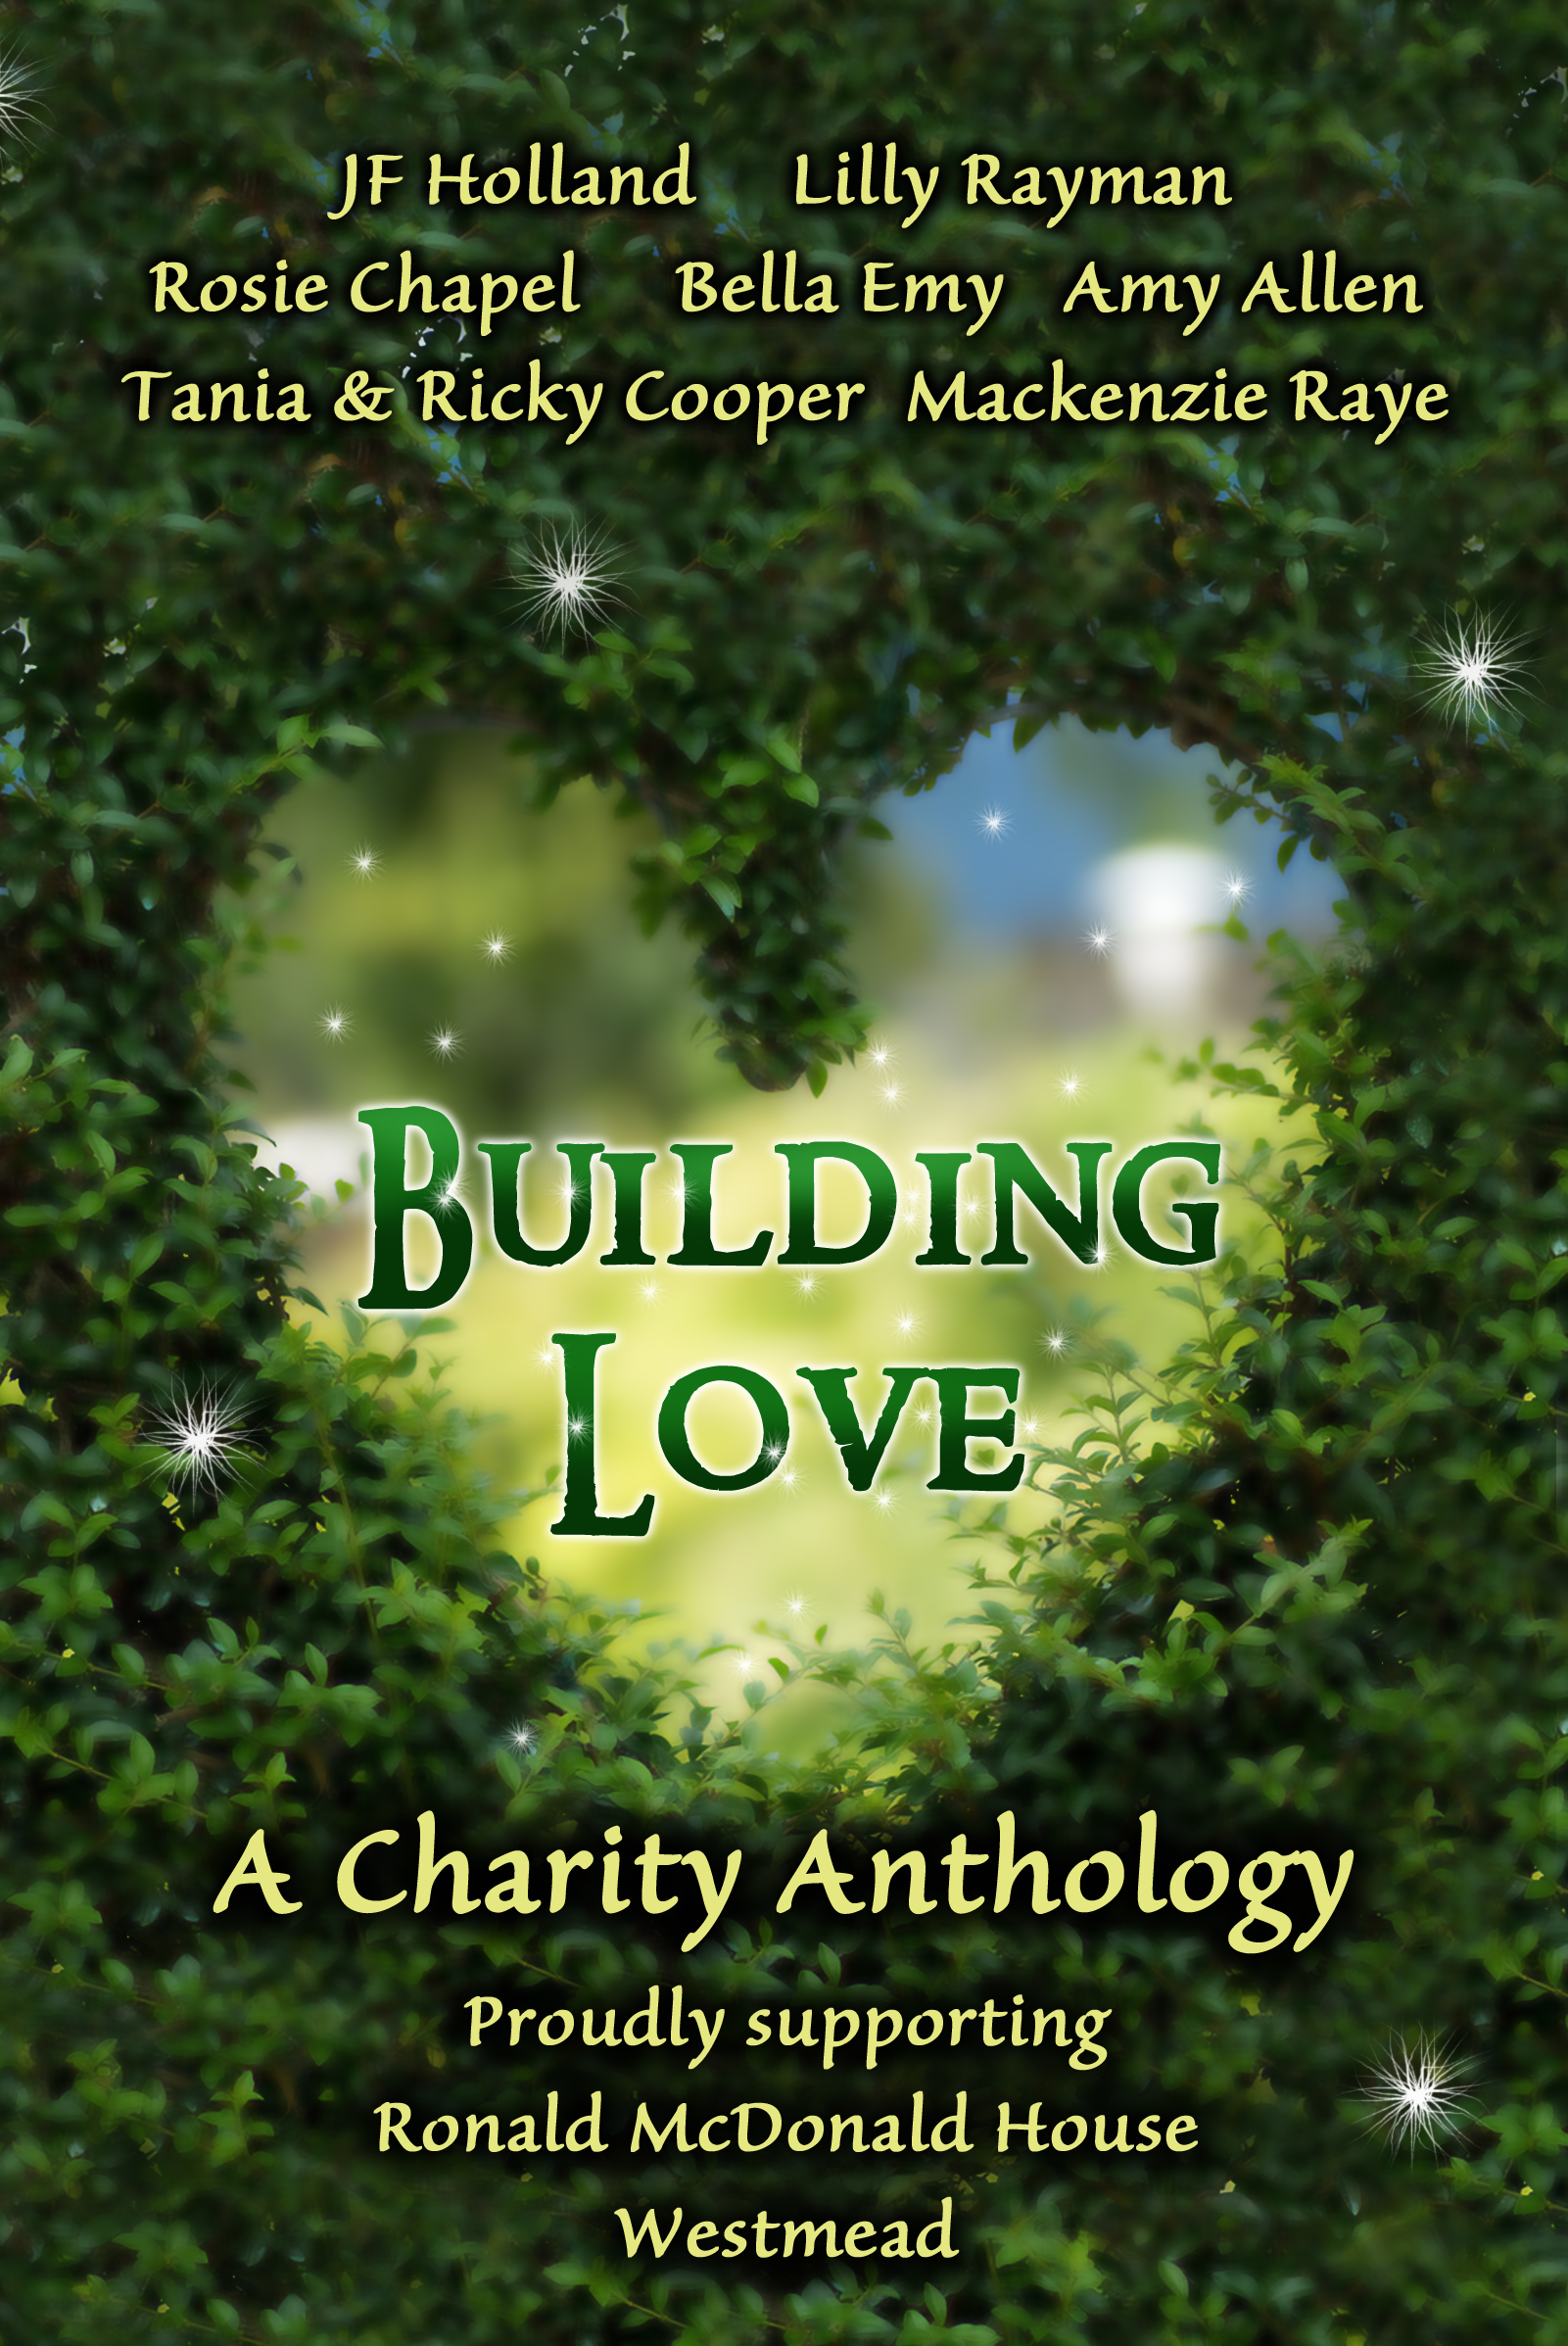 building love ebook cover new version.jpg